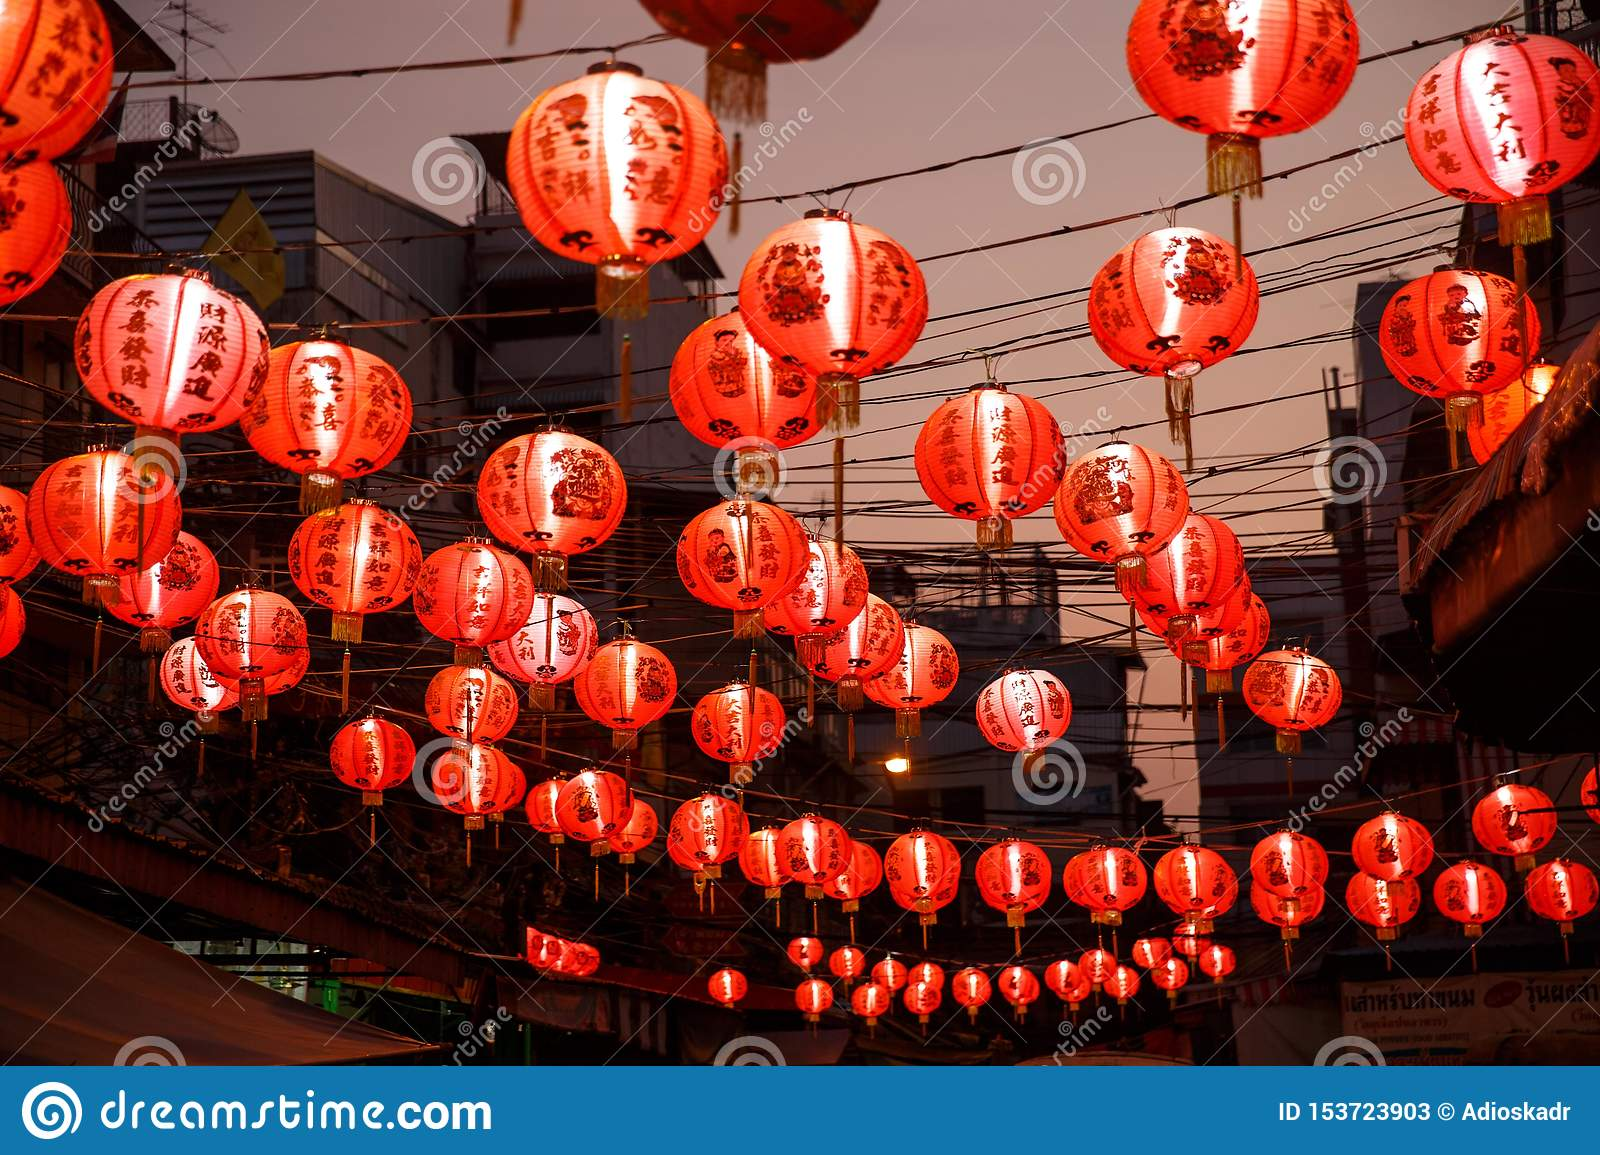 Chinese red lanterns in chinatown on chinese New Year